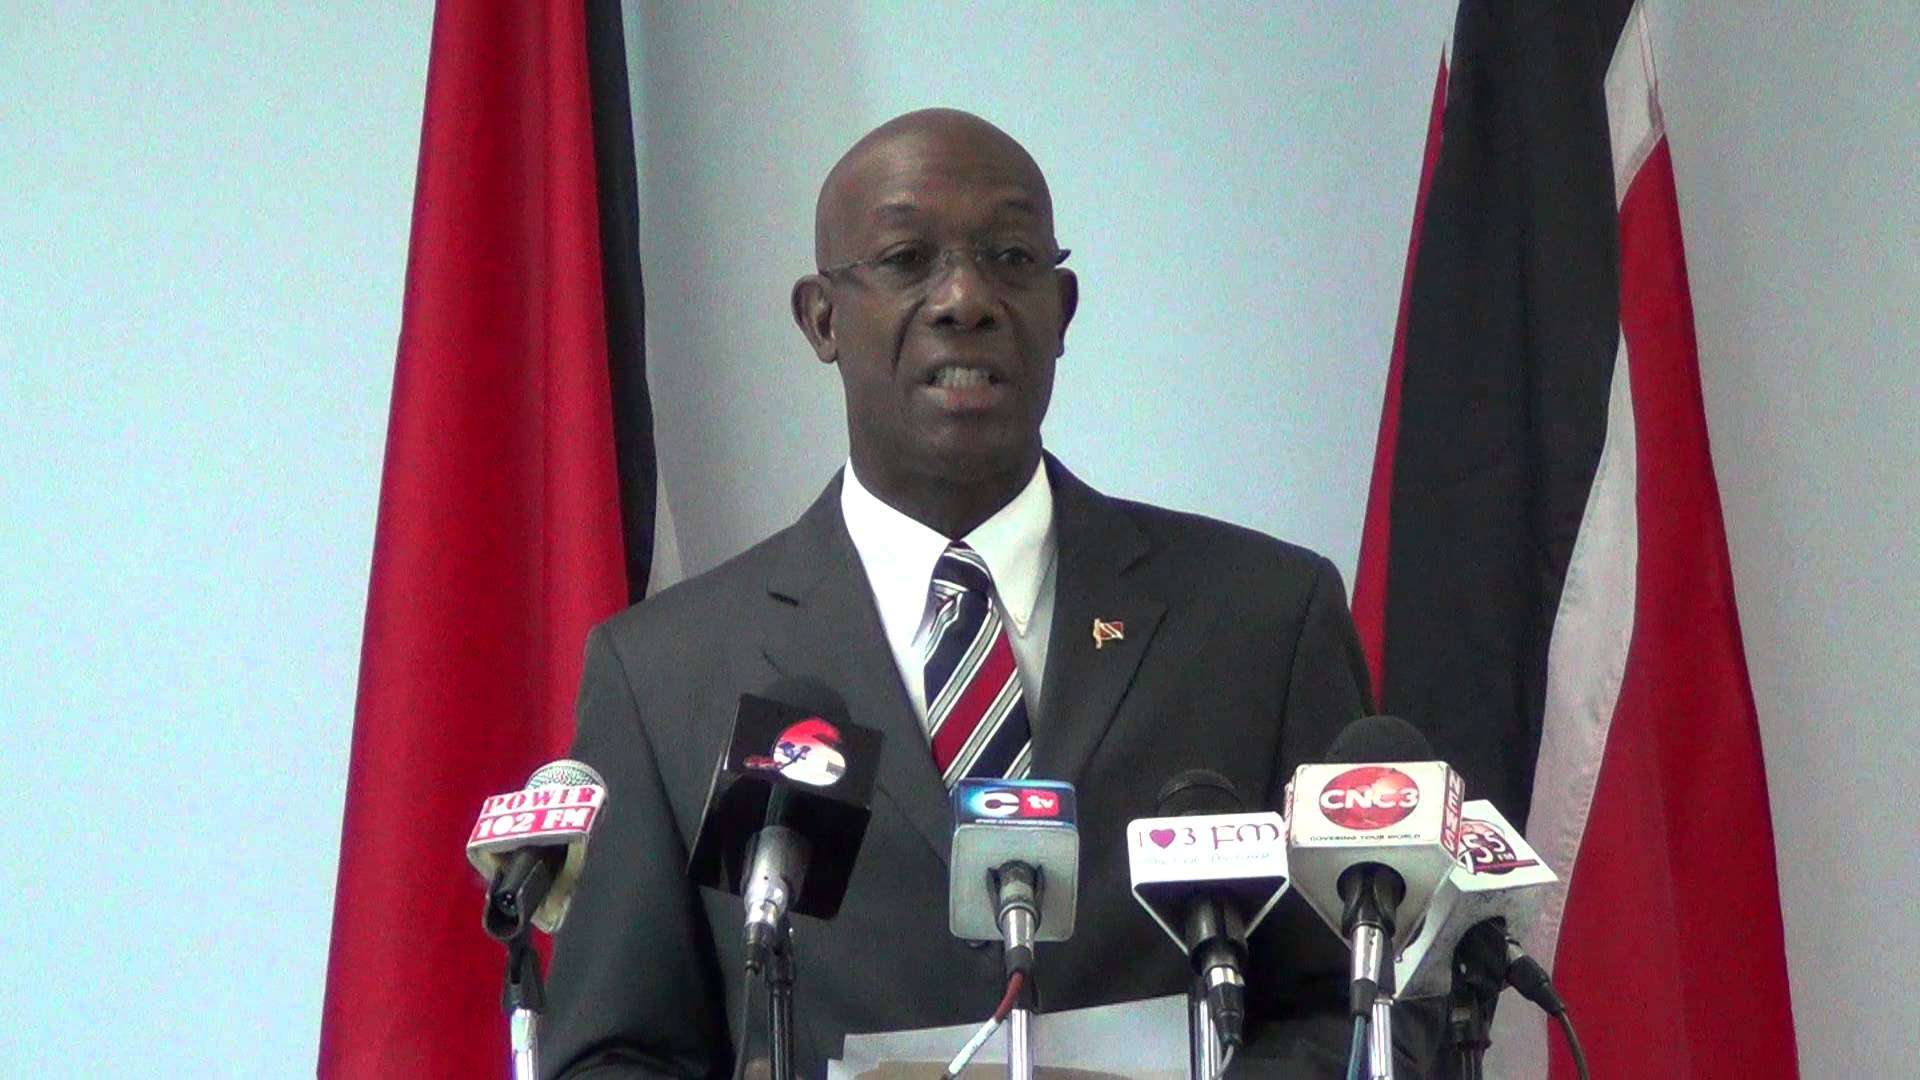 T&T Opposition Leader, Keith Rowley, Suspended from Parliament